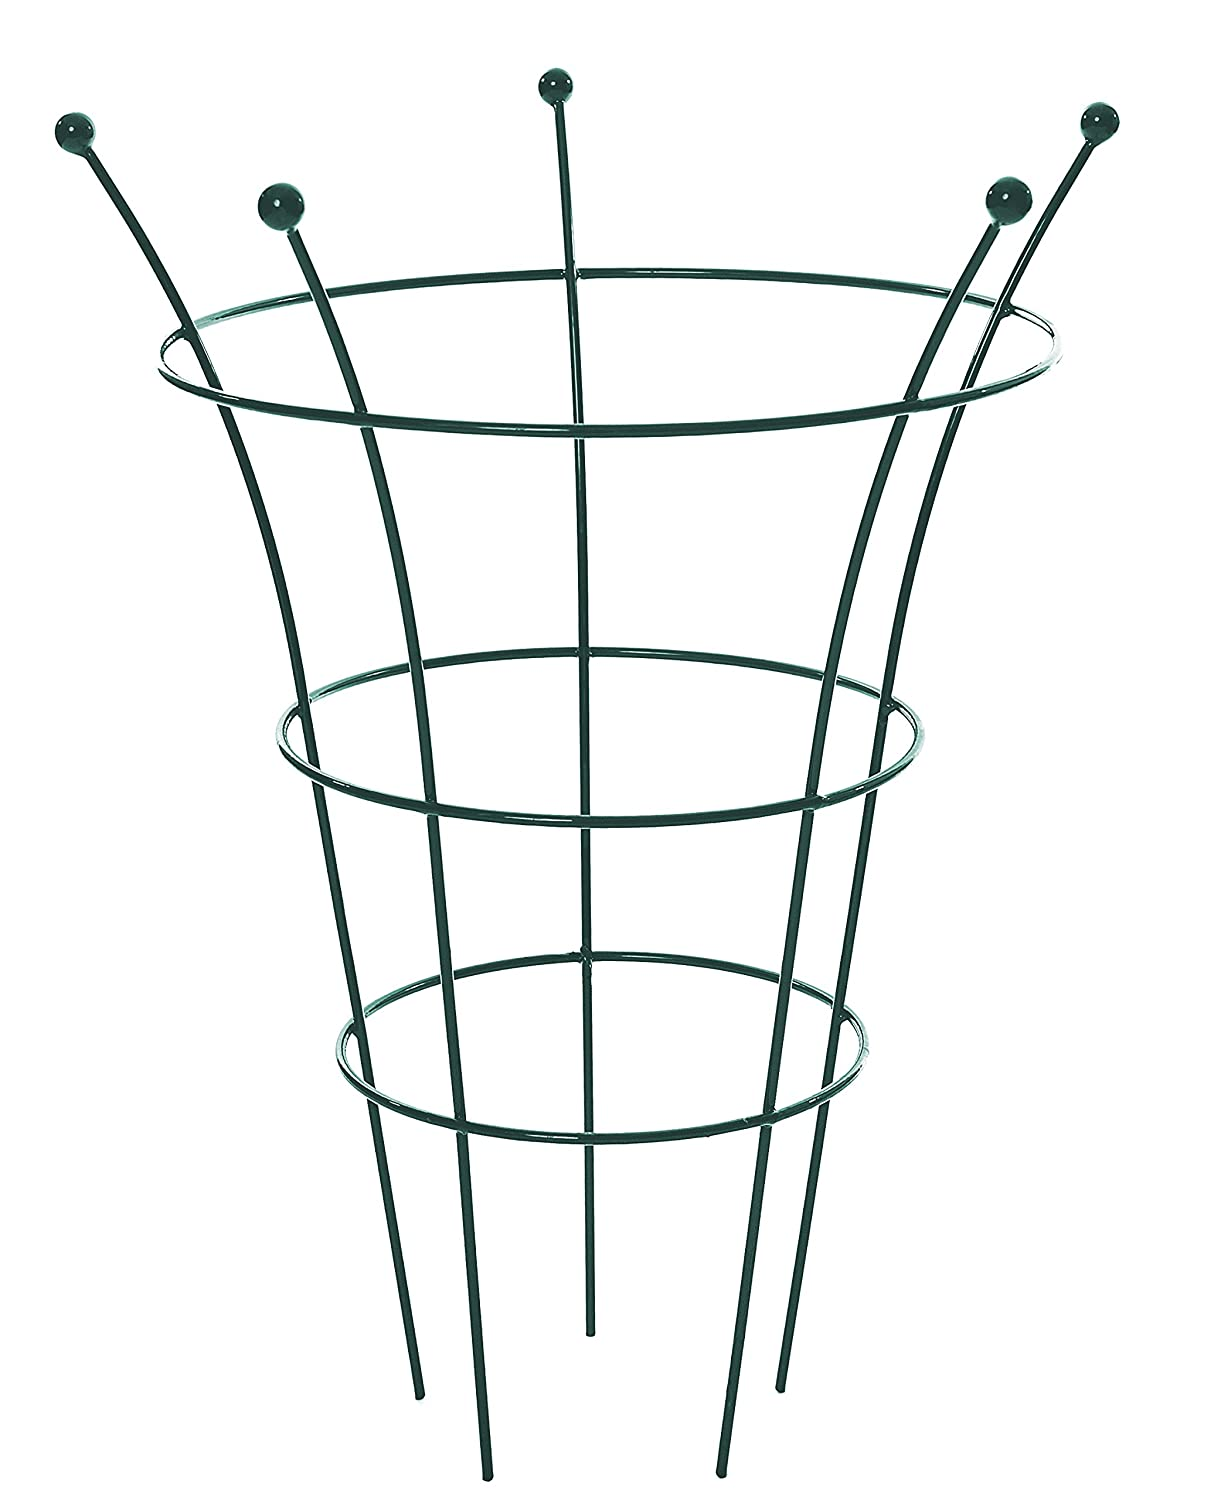 Pack of 2 x Heavy Duty 50cm dia Green Herbaceous Plant Supports Grow Through Meta Plant Support